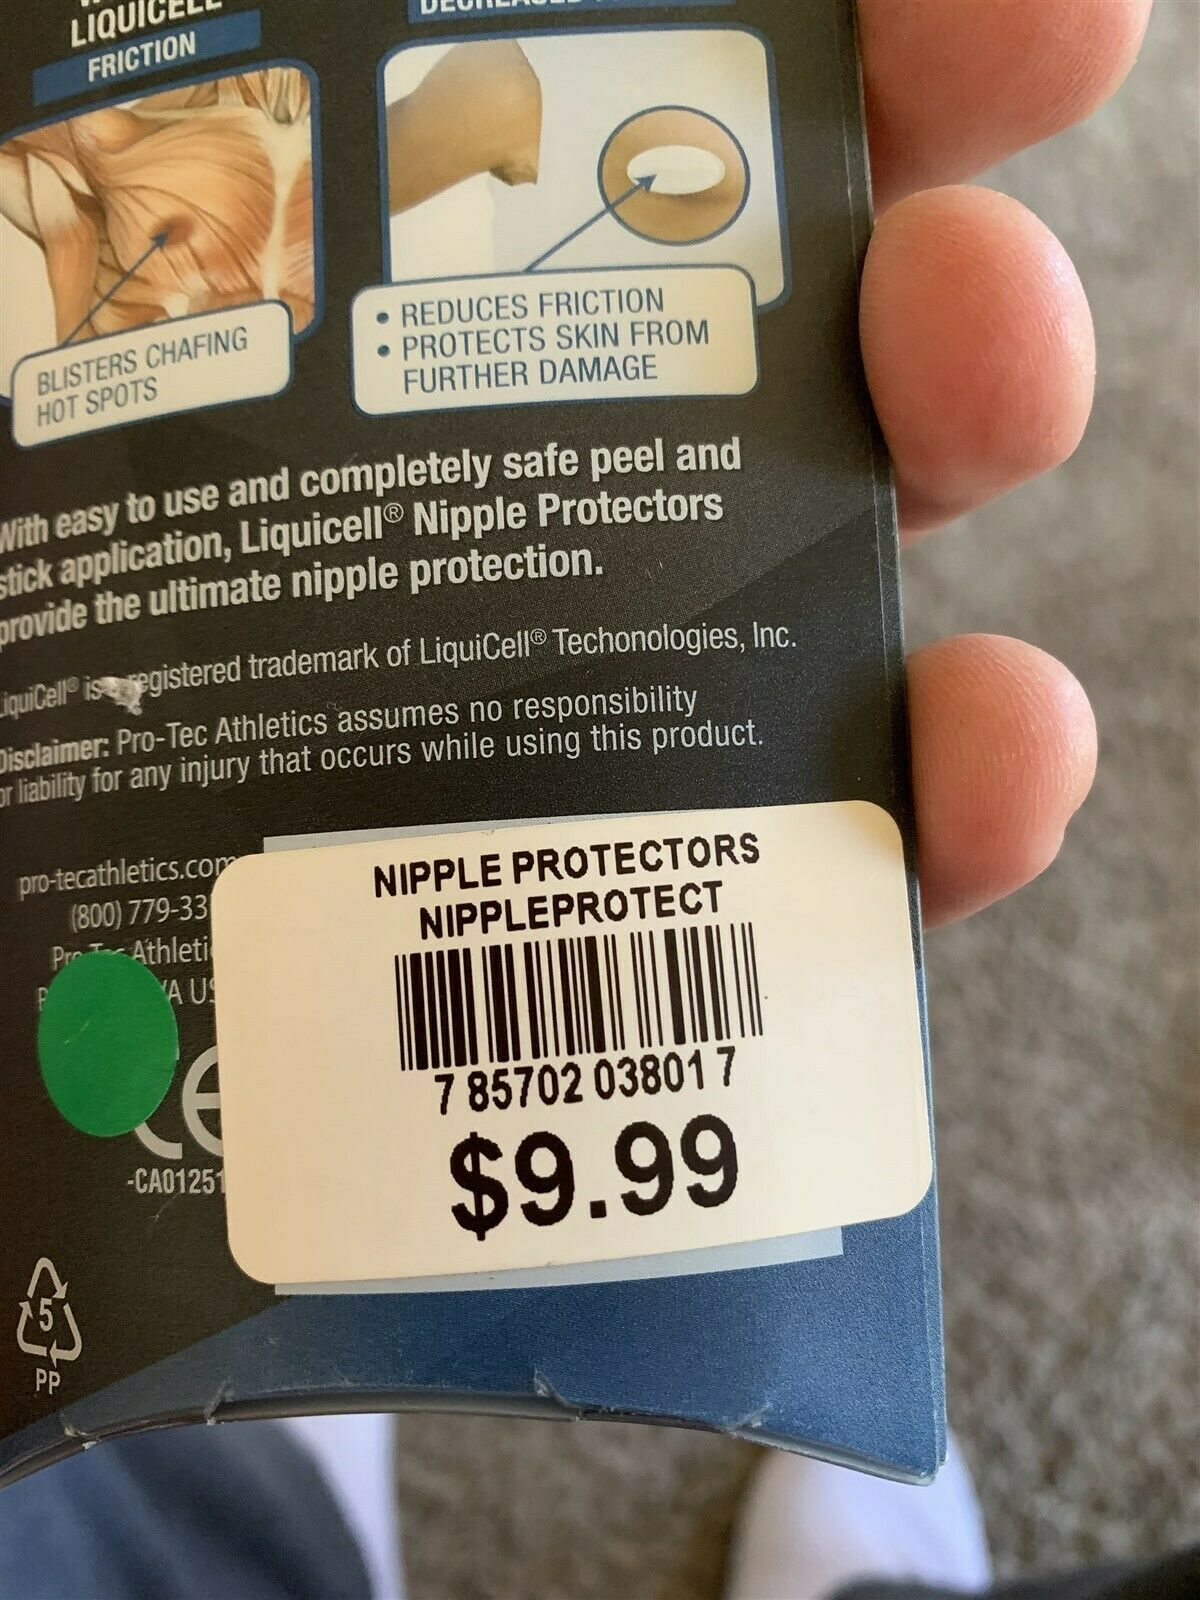 Liquicell Nipple Protectors For Runners image 5